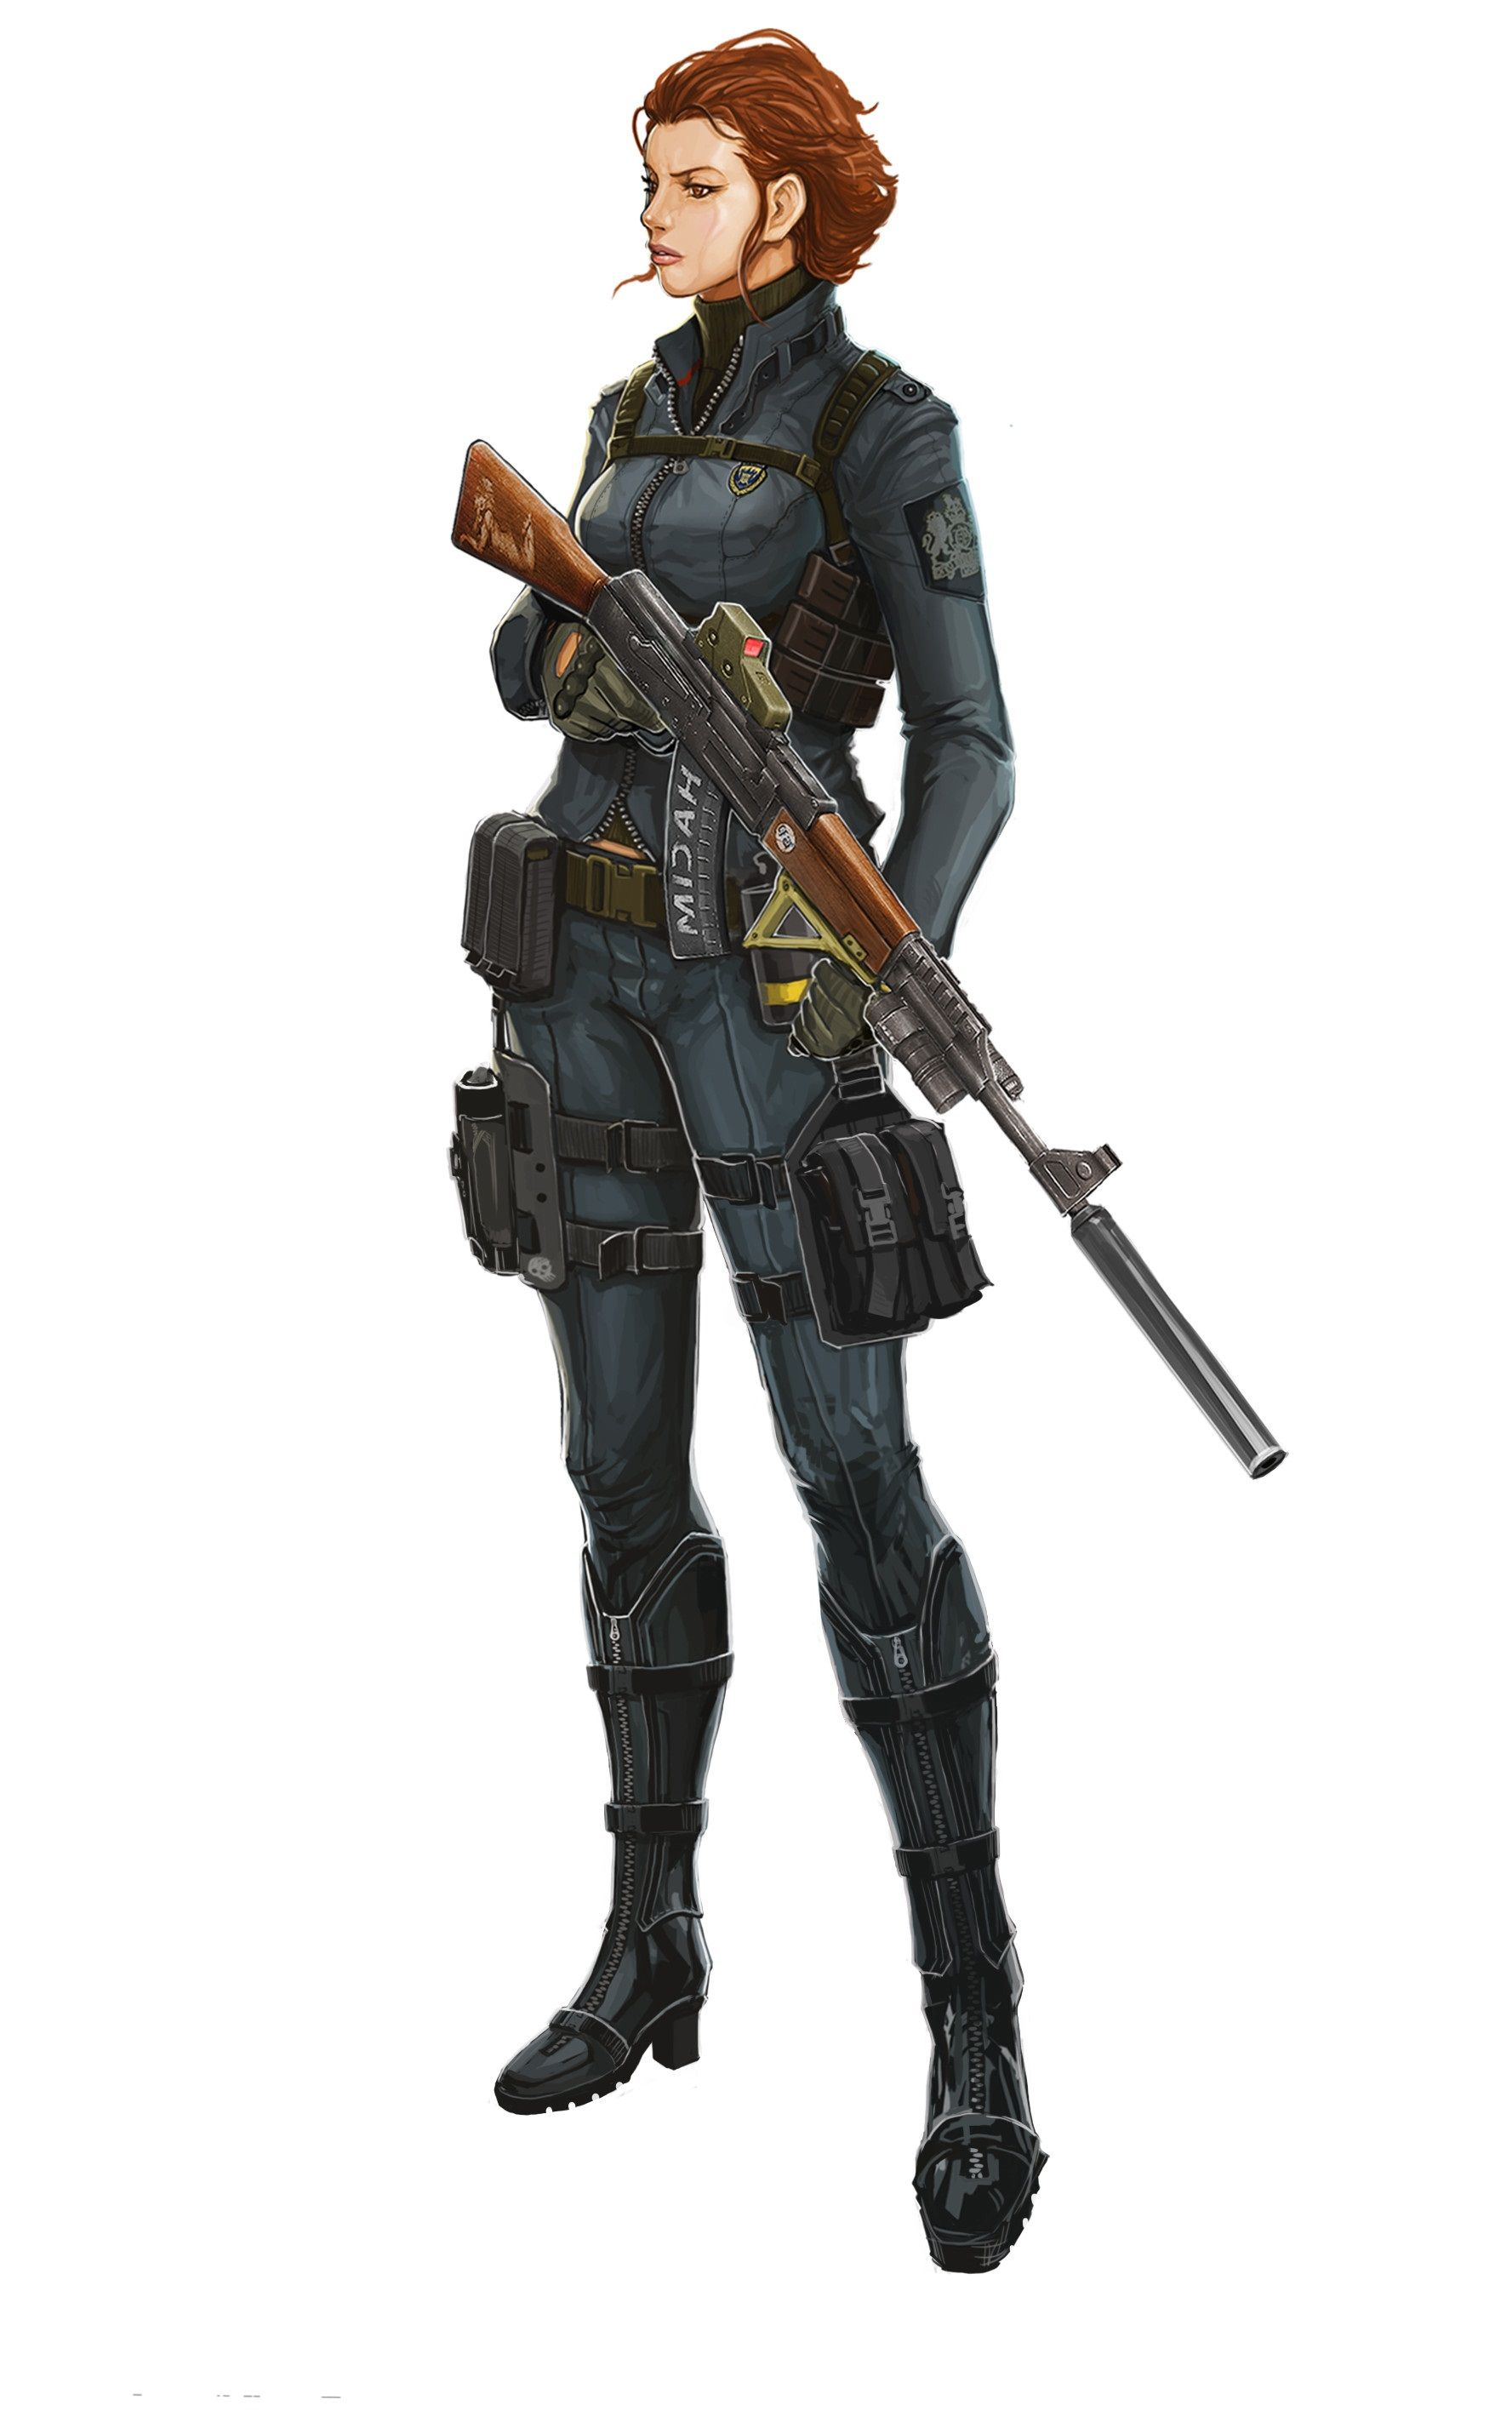 Female Human Soldier Mercenary Dnd Apocaplypse In 2019 Character